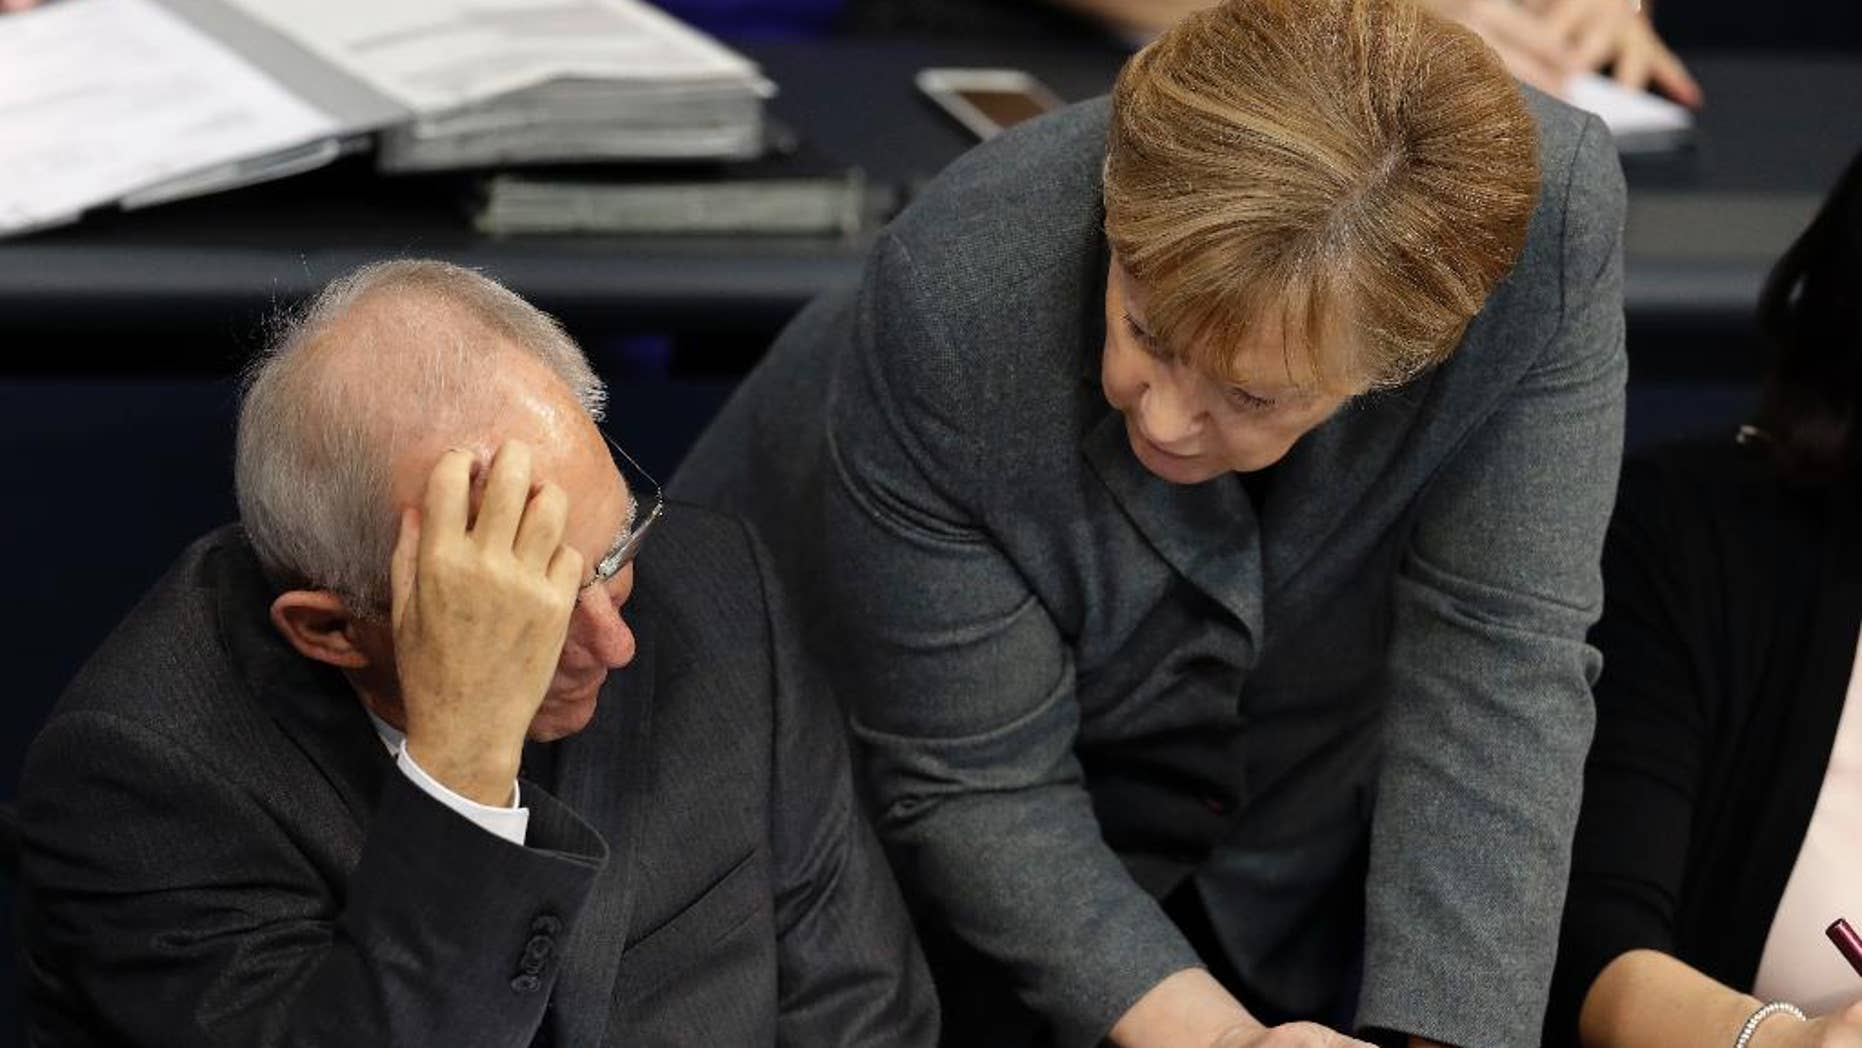 German Chancellor Angela Merkel, right, and German Finance Minister Wolfgang Schaeuble, left, talk during a budget debate as part of a meeting of the German Federal Parliament, Bundestag, at the Reichstag building in Berlin, Germany, Tuesday, Nov. 22, 2016. (AP Photo/Michael Sohn)